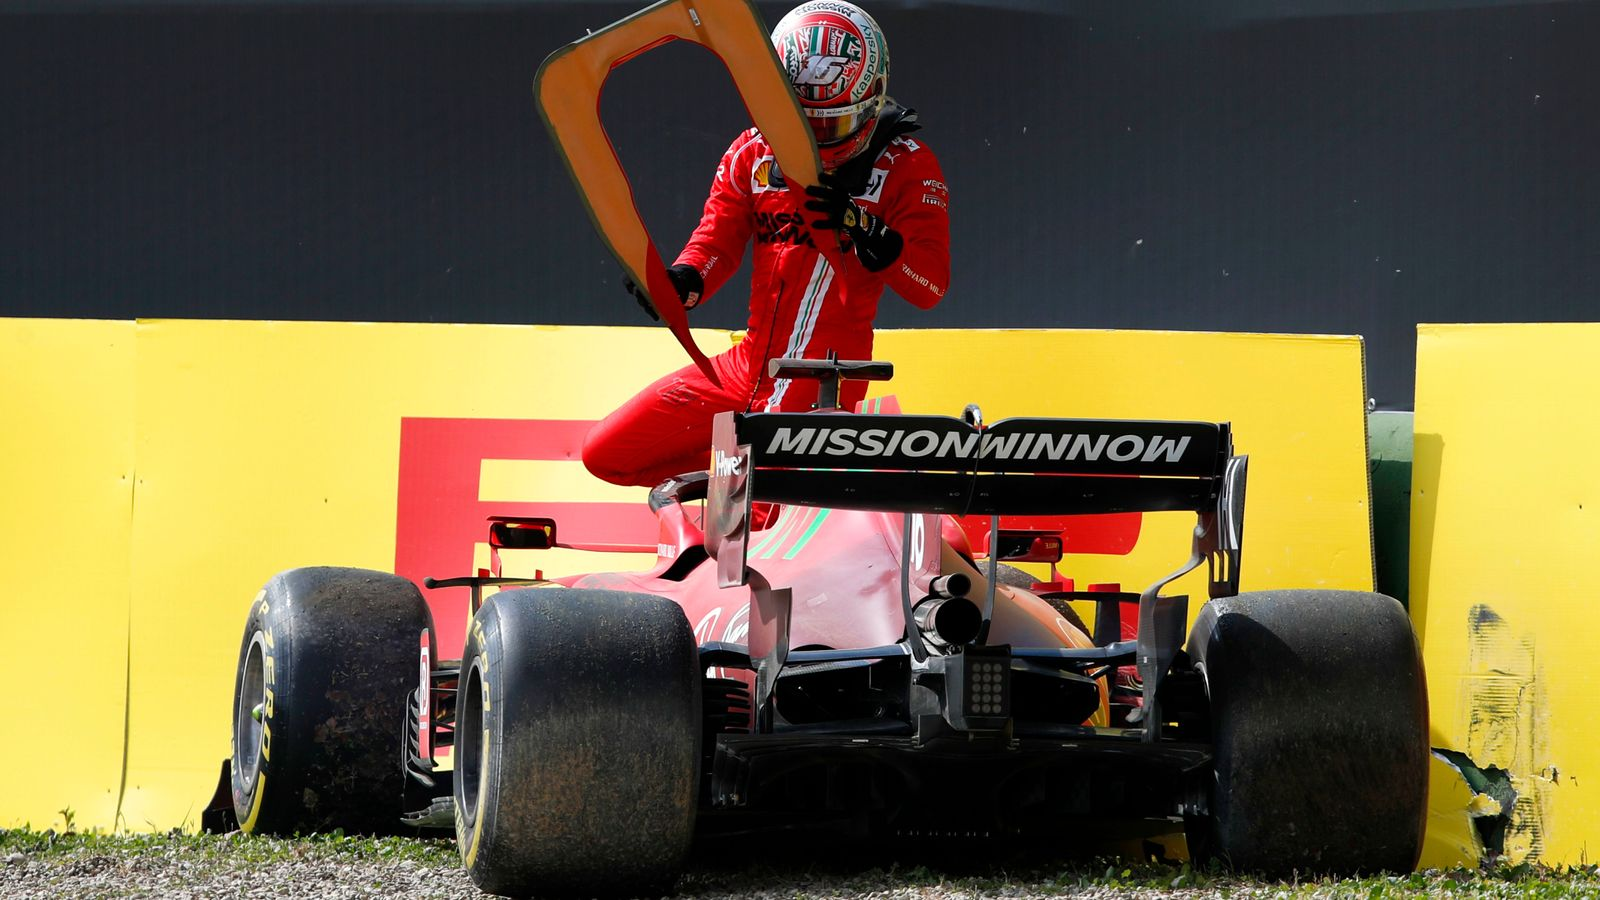 Emilia-Romagna GP: Mercedes fastest as Max Verstappen's Red Bull drops out in Practice Two